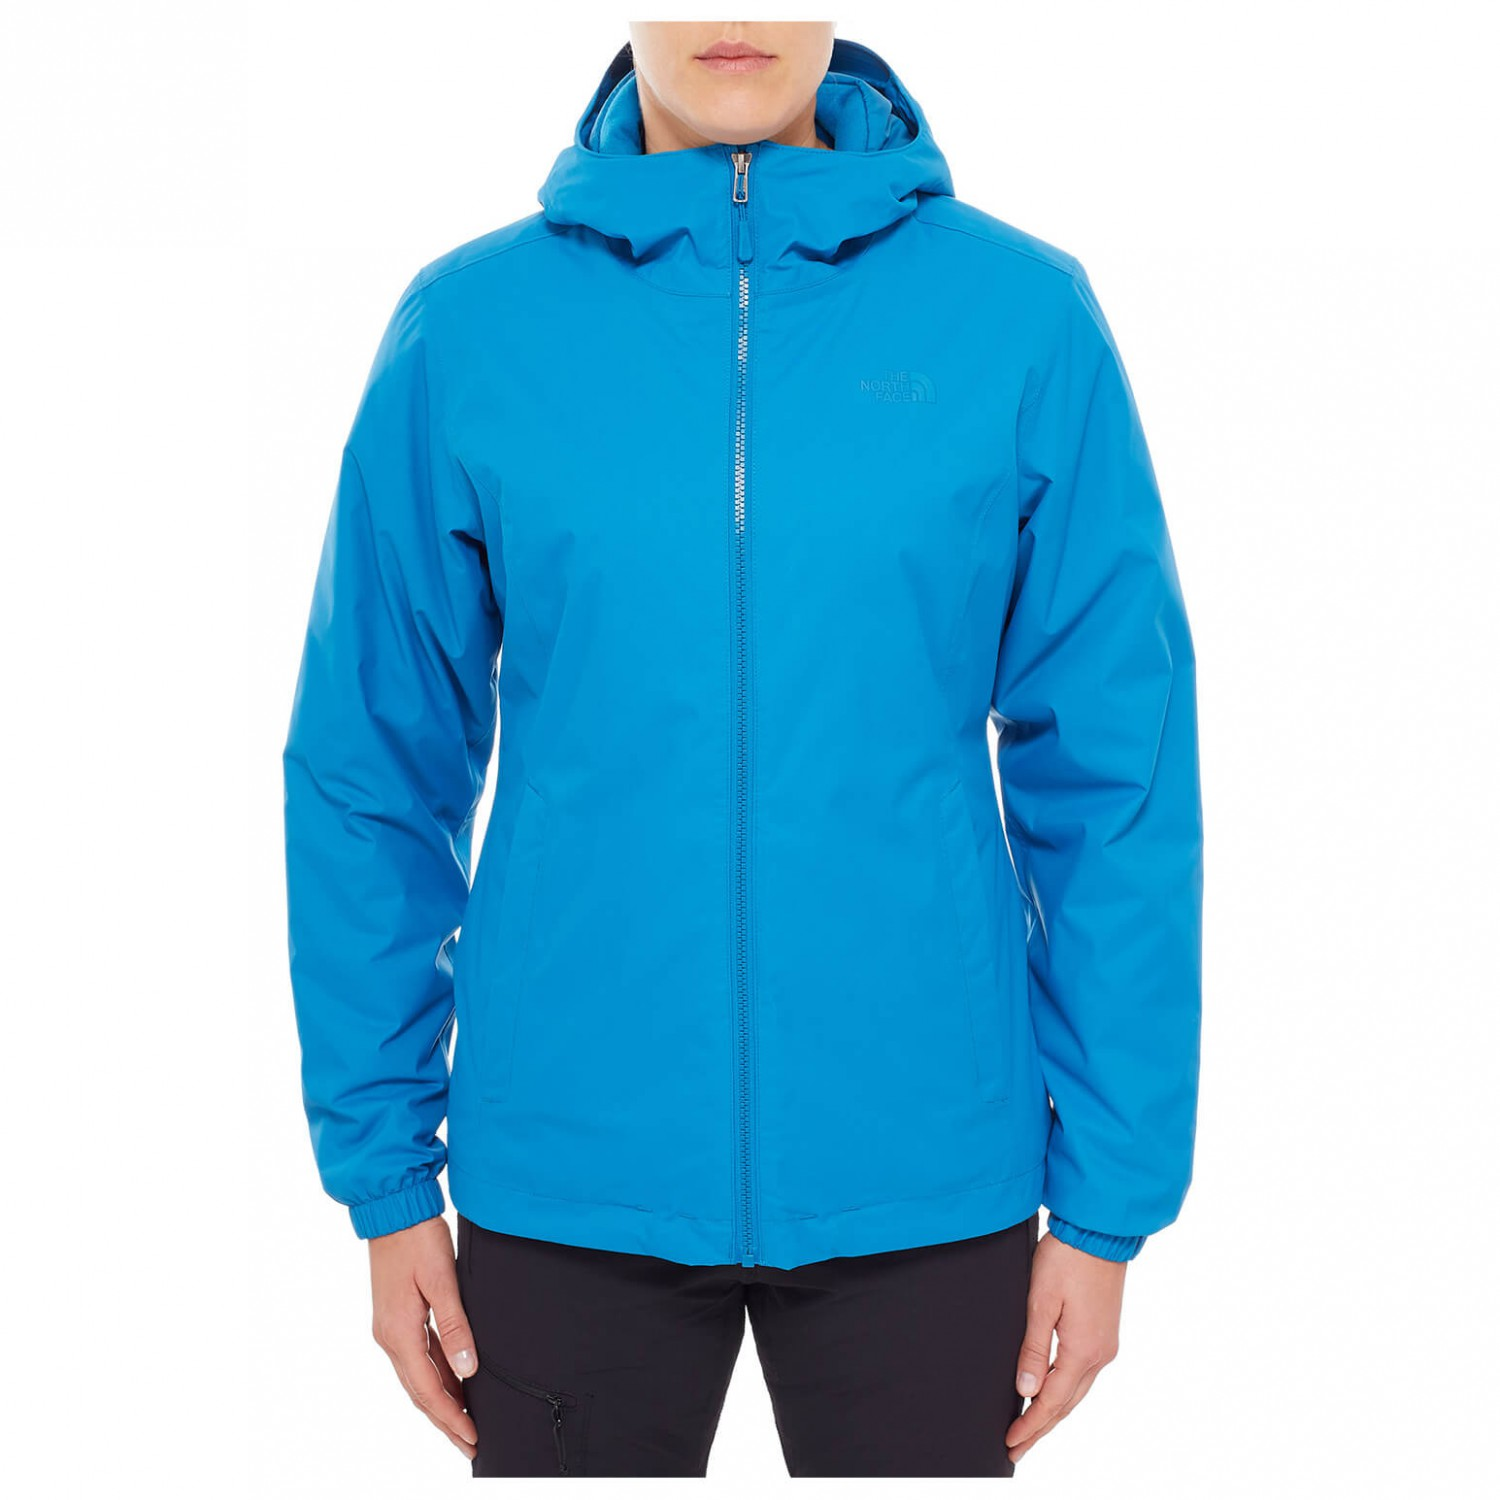 new concept d14f4 aeab8 The North Face - Women's Quest Insulated Jacket - Synthetic jacket